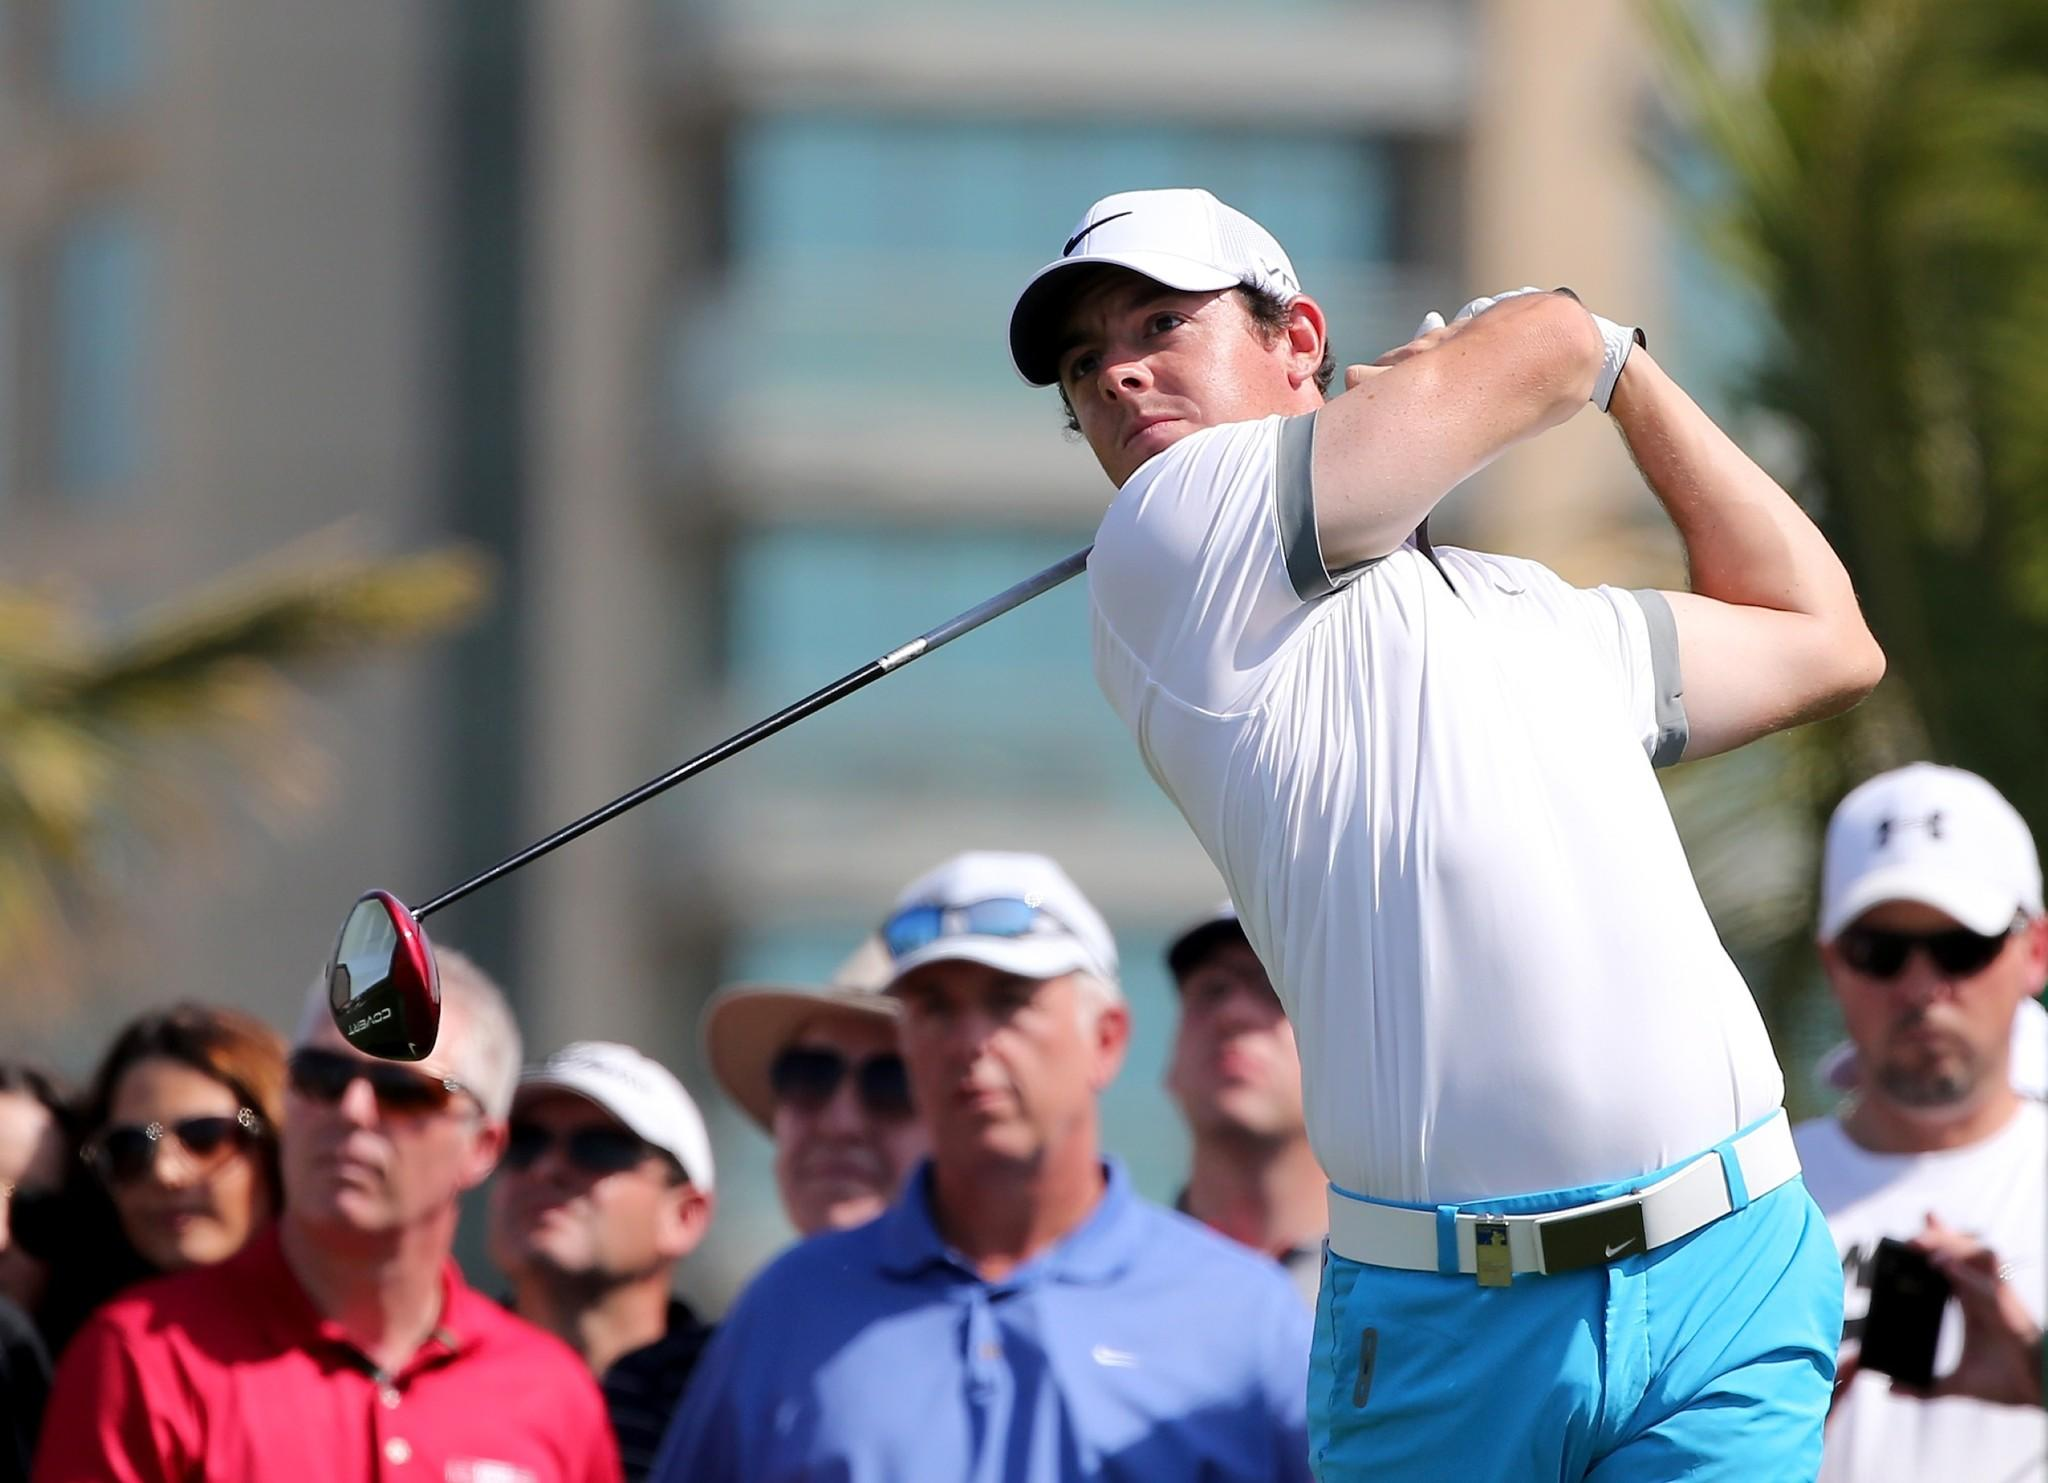 Rory Mcilroy of Norhen Ireland in action during the first round of the 2014 Omega Dubai Desert Classic.